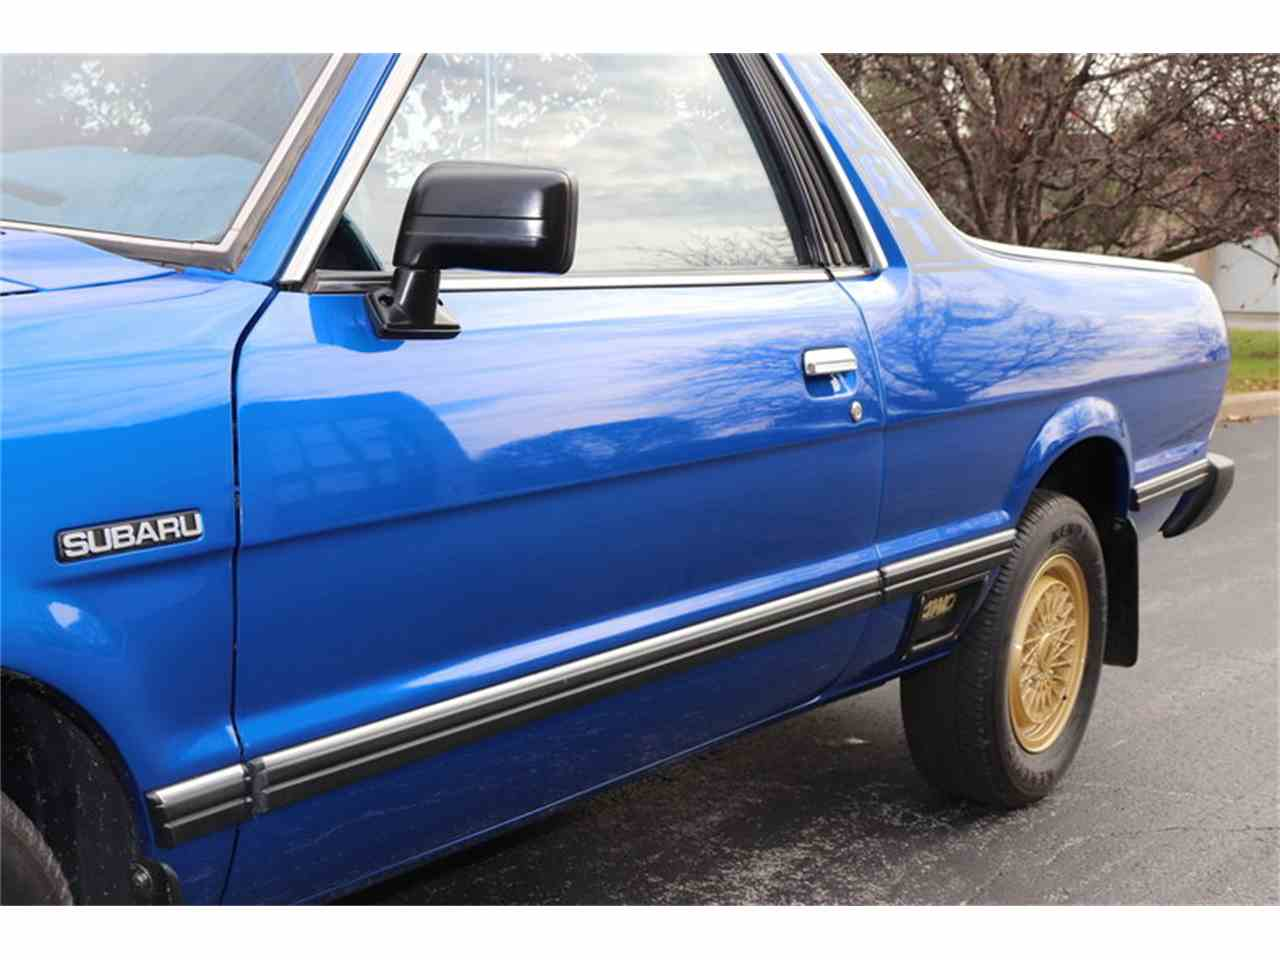 Large Picture of 1983 Brat located in Alsip Illinois Offered by Midwest Car Exchange - M4TU